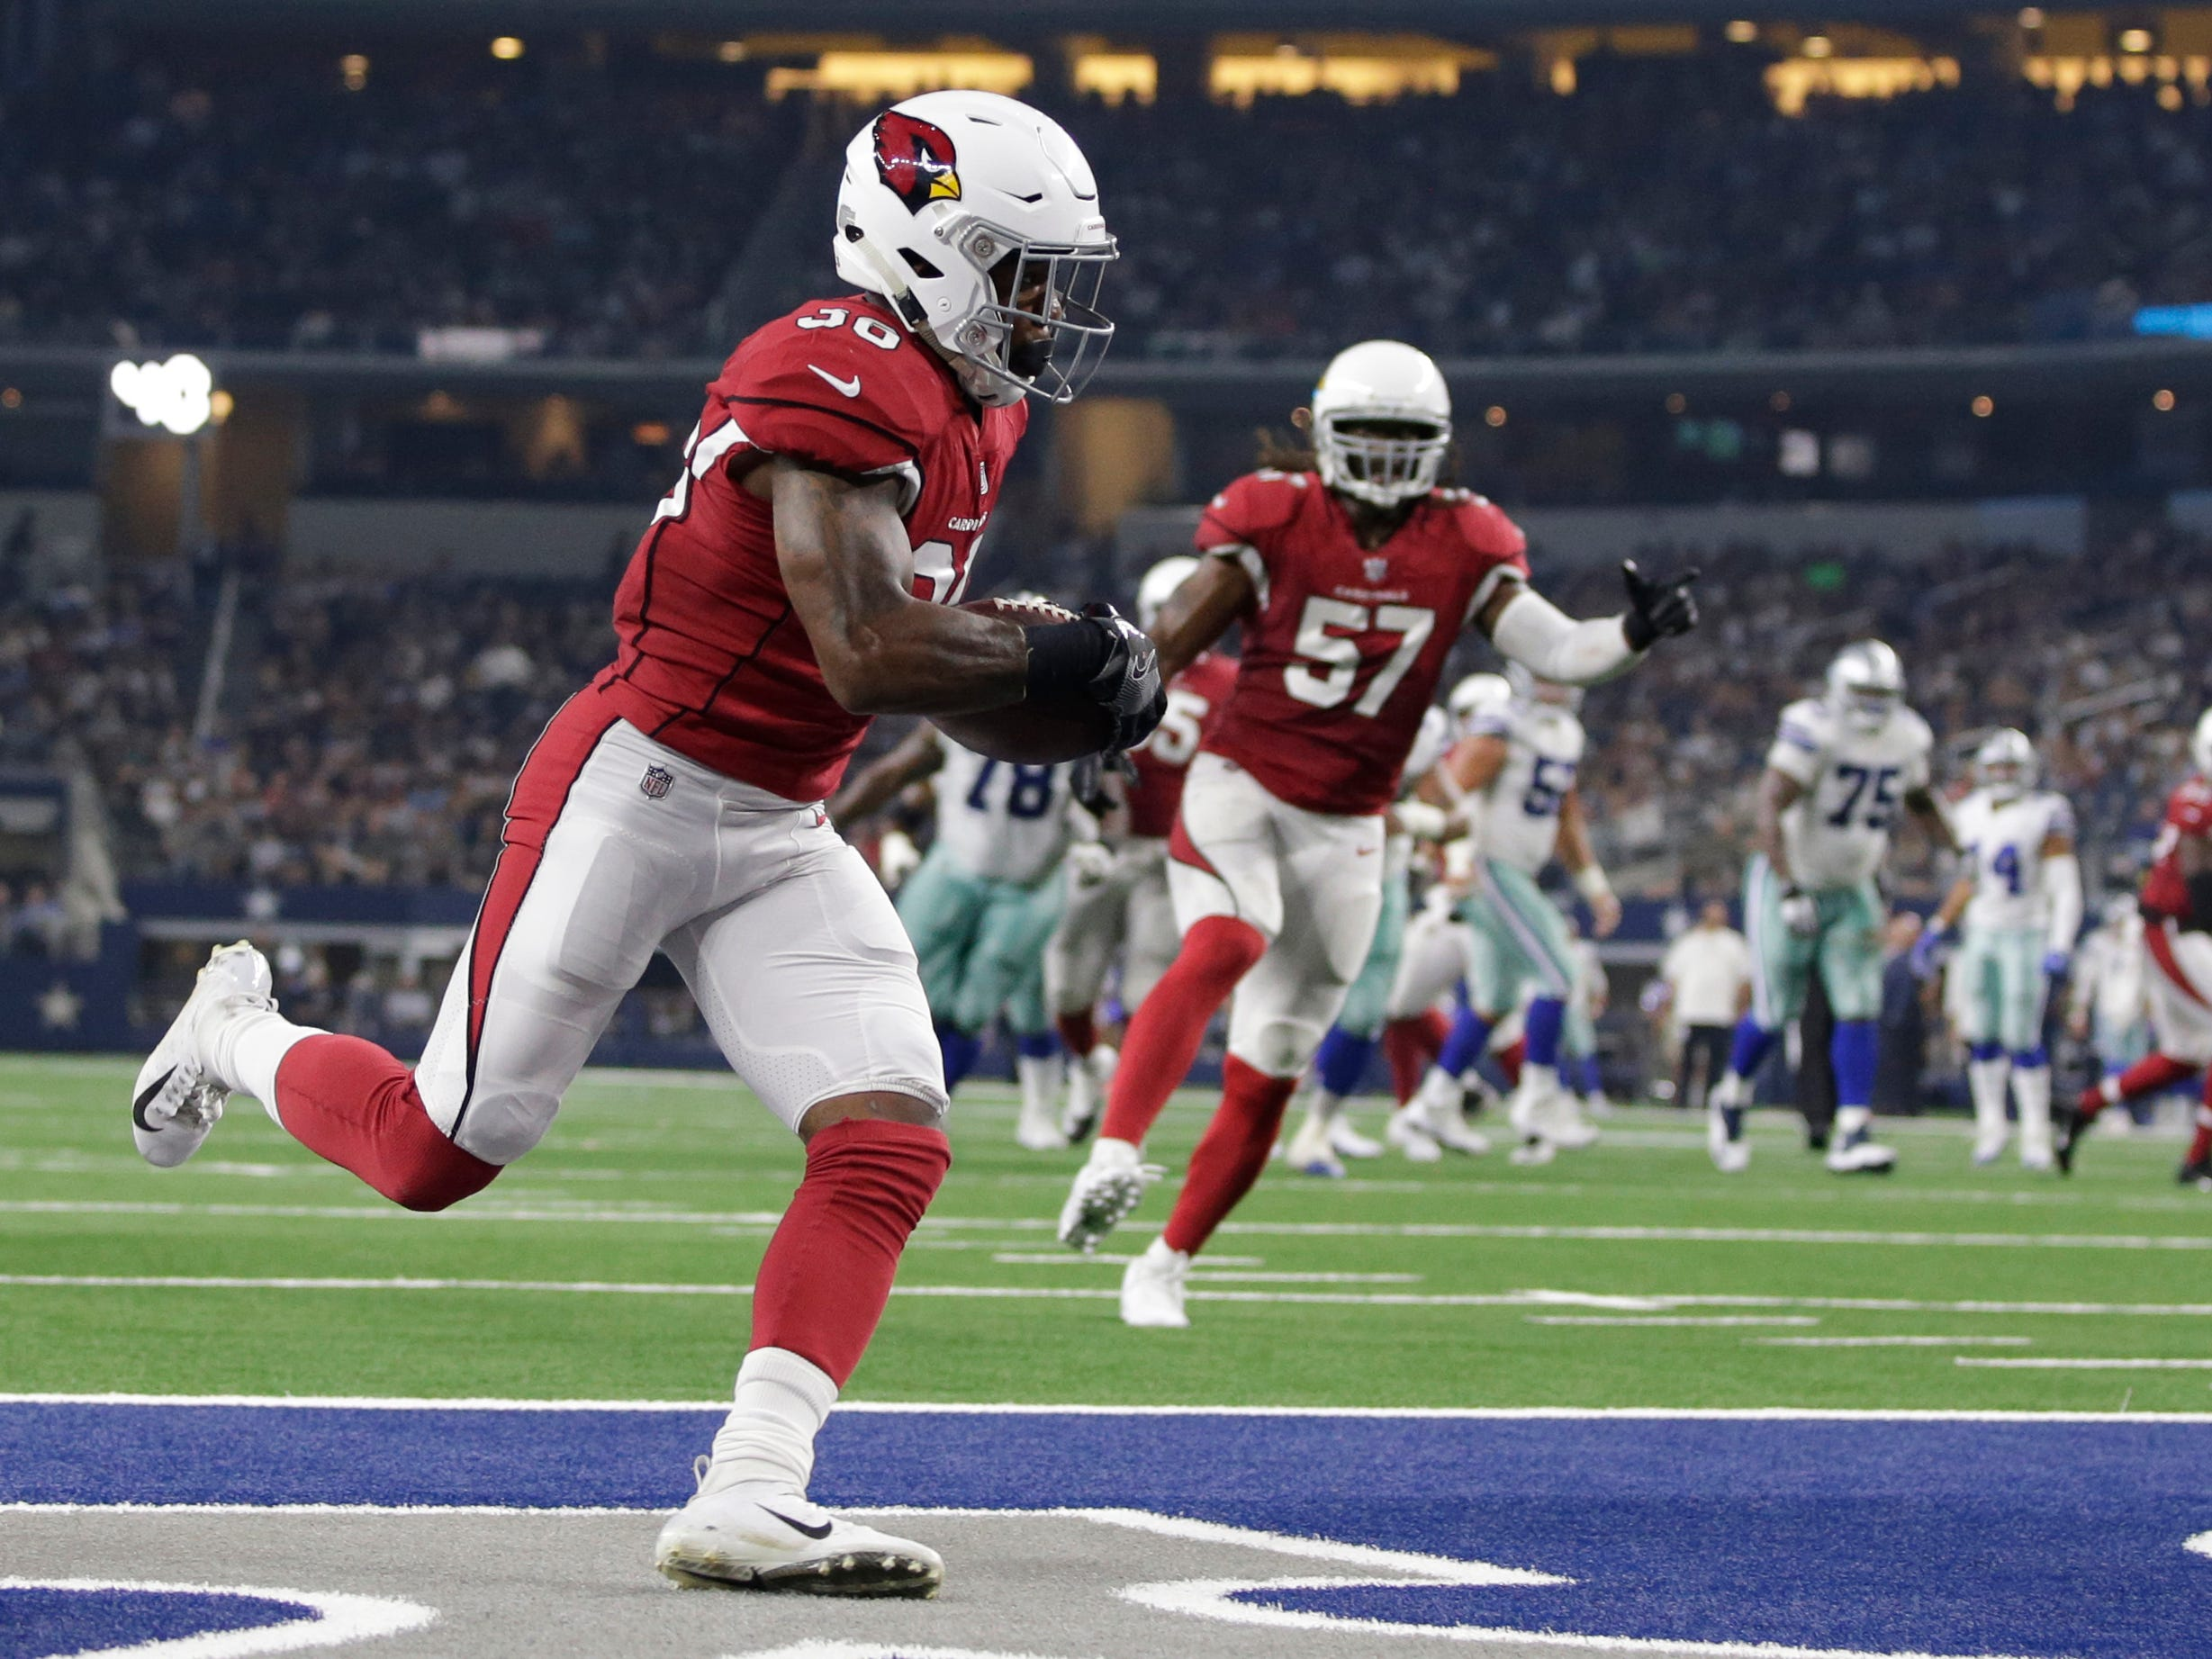 Aug 26, 2018; Arlington, TX, USA; Arizona Cardinals defensive back Budda Baker (36) returns an interception in the second quarter against the Dallas Cowboys at AT&T Stadium. Mandatory Credit: Tim Heitman-USA TODAY Sports